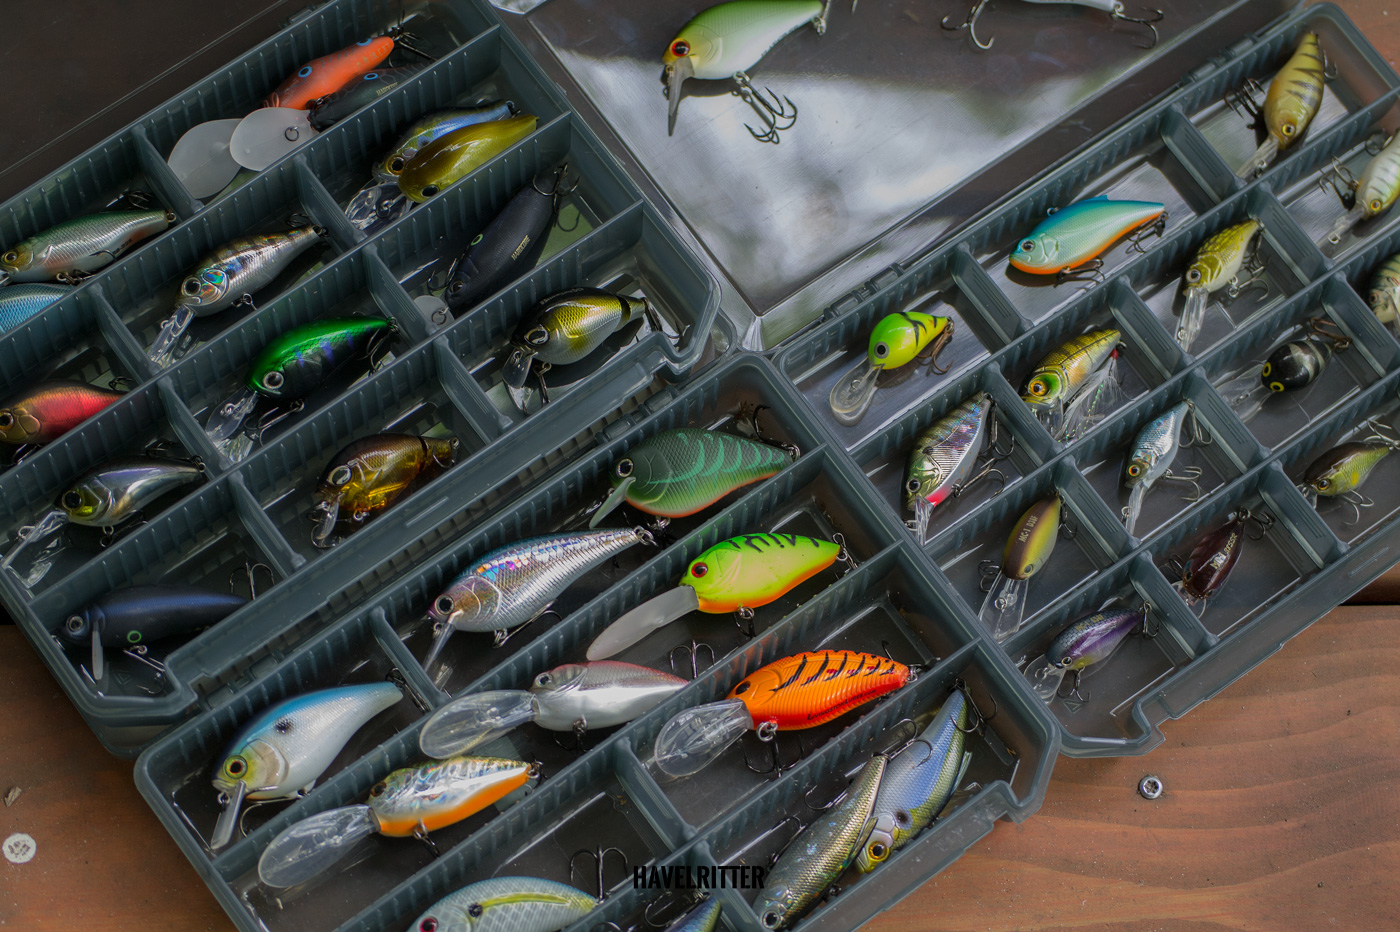 MEIHO Versus VS 3020 Tackle Box für Wobbler - Minnows, Crankbaits, Jerkbaits